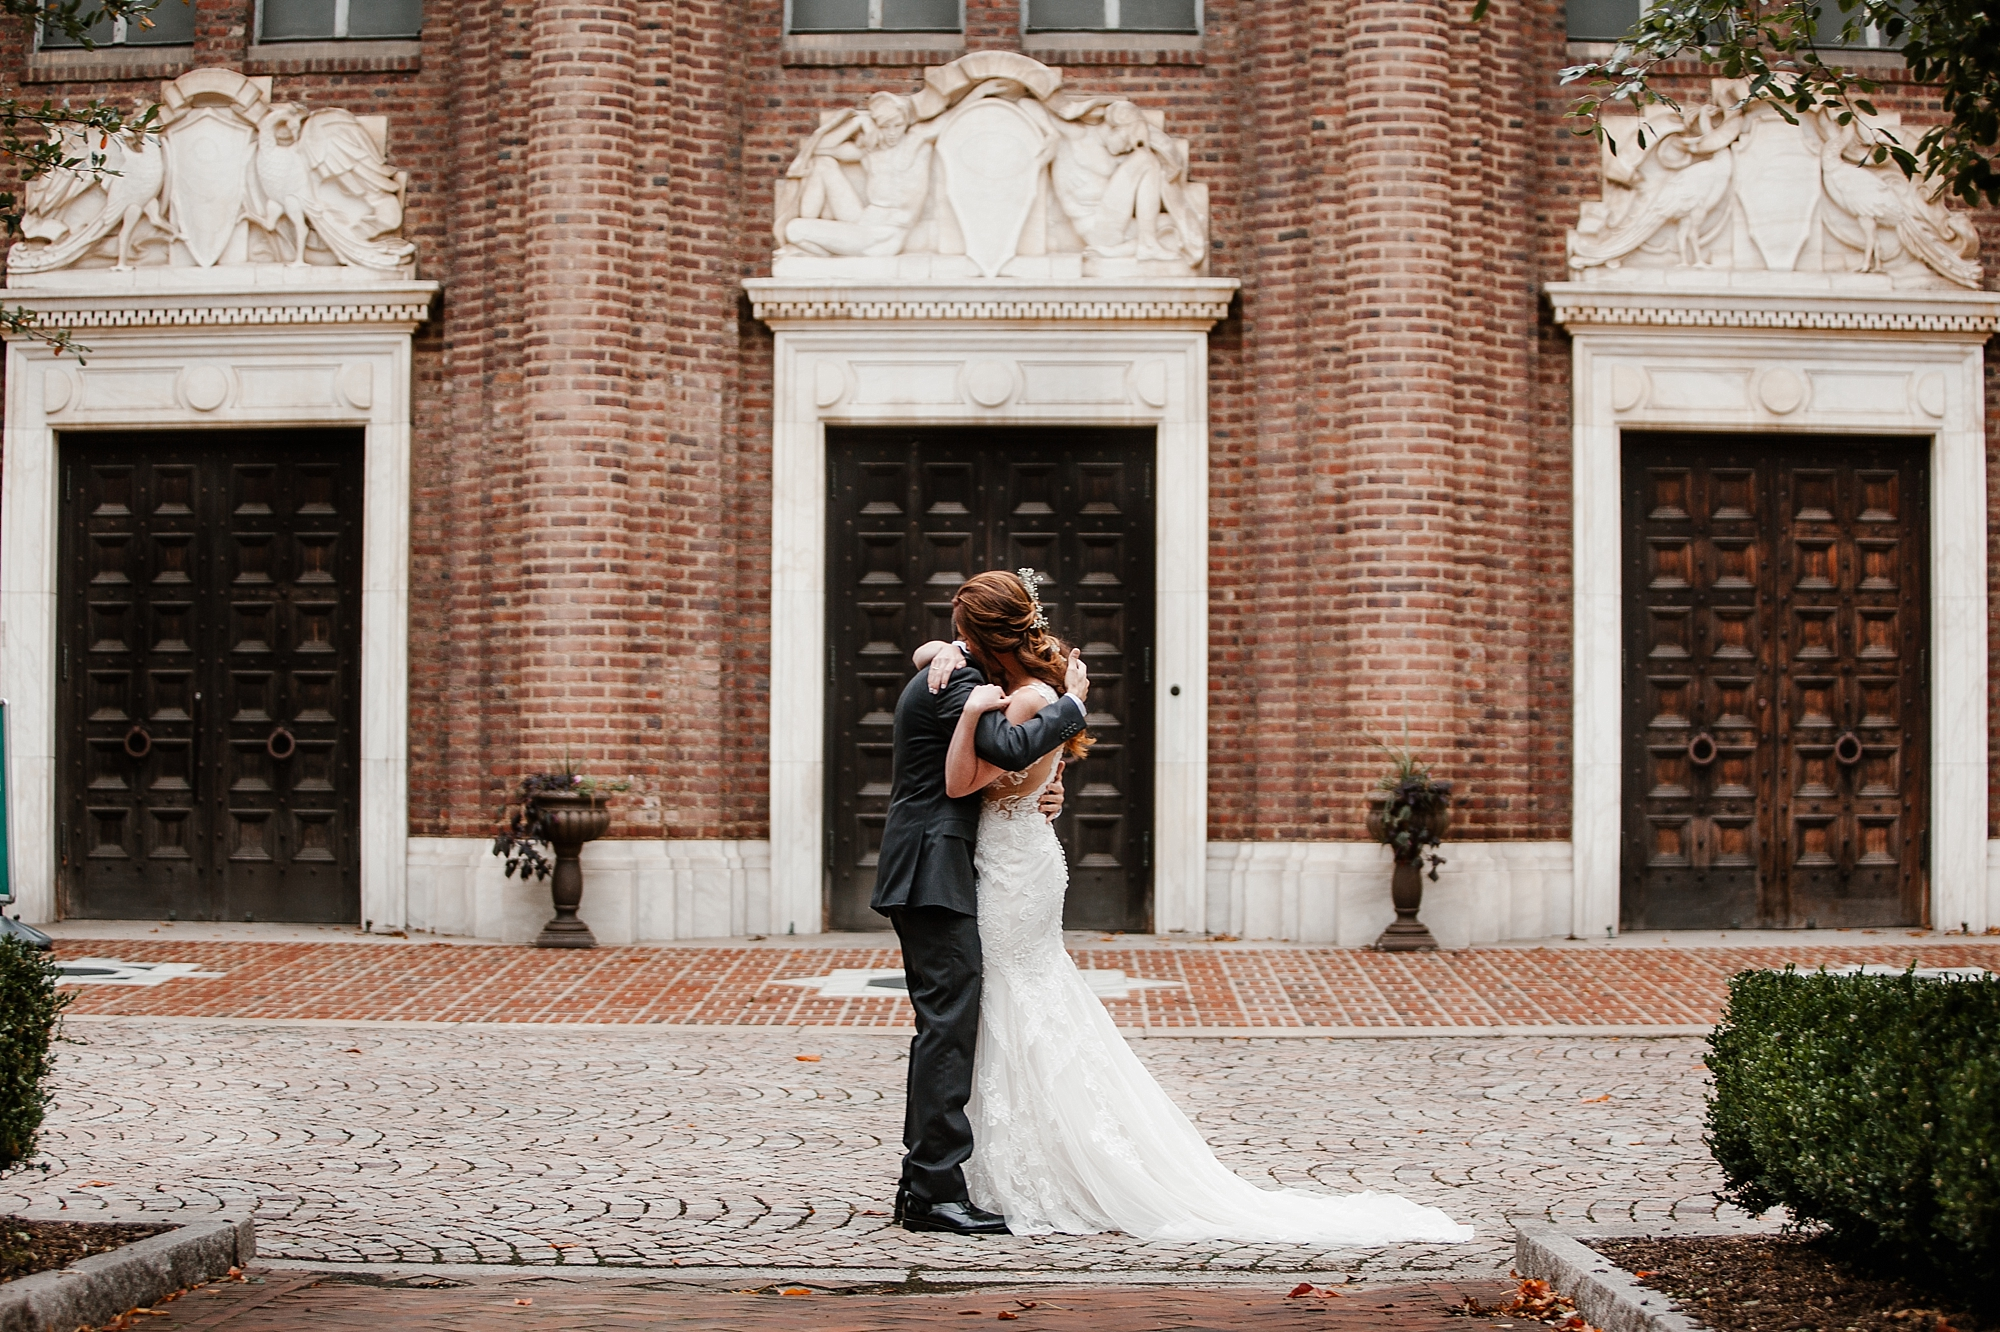 01_Love_by_Joe_Mac_Best_Wedding_Photography_Philadelphia_Penn_Museum_Univerity__0026.jpg